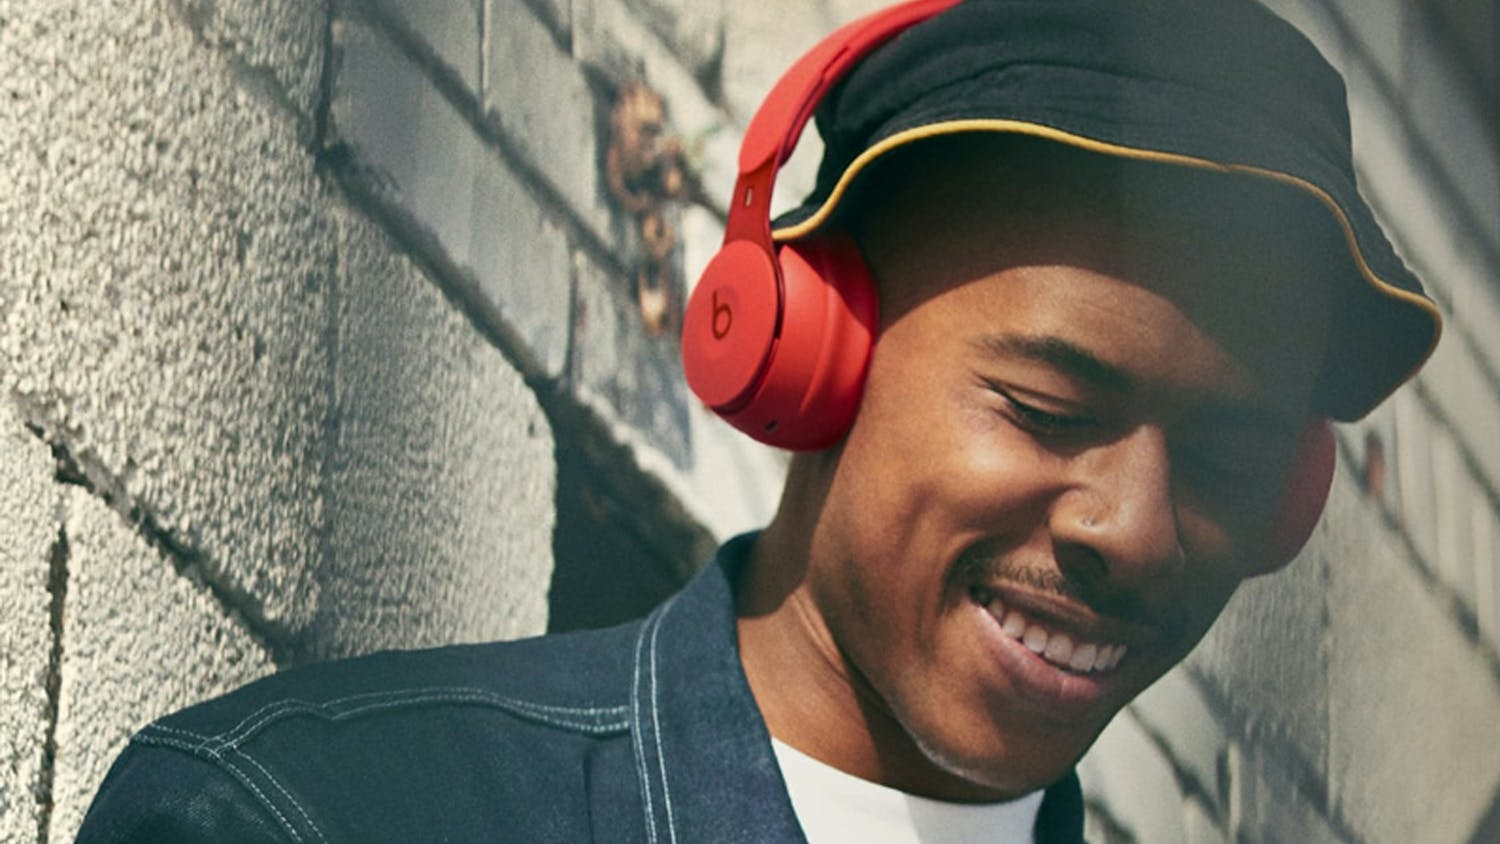 Beats Solo Pro More Matte Wireless On-Ear Headphones - Red